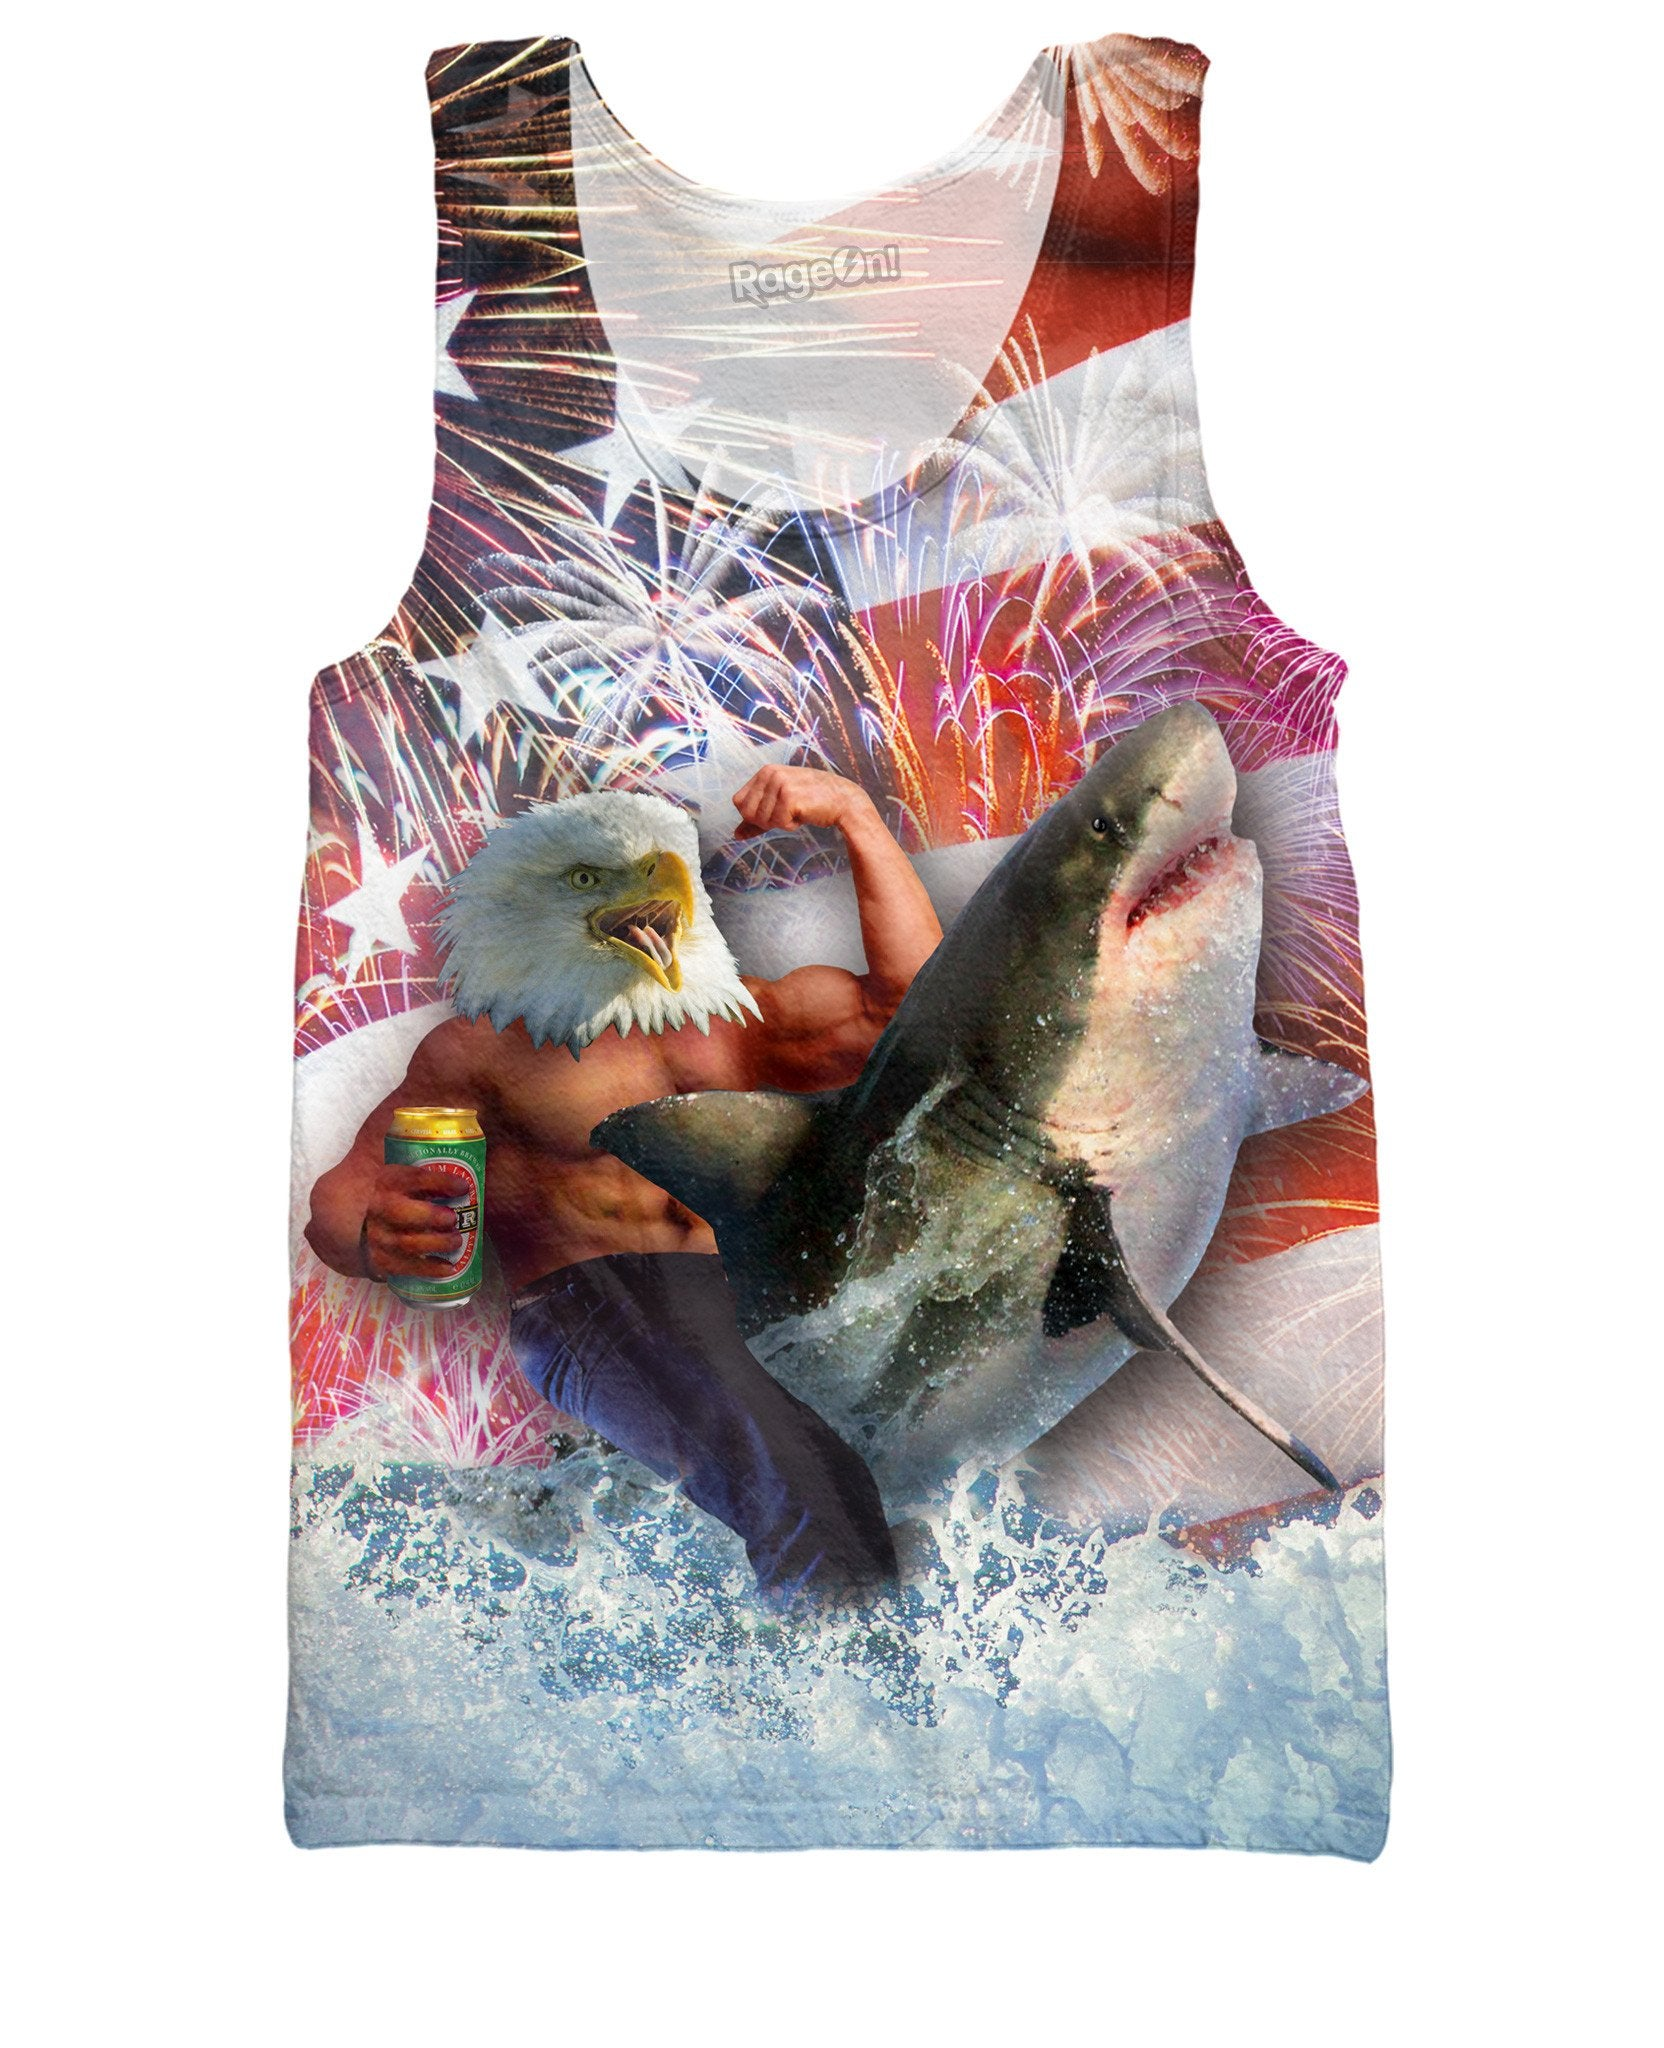 The Patriot Tank Top